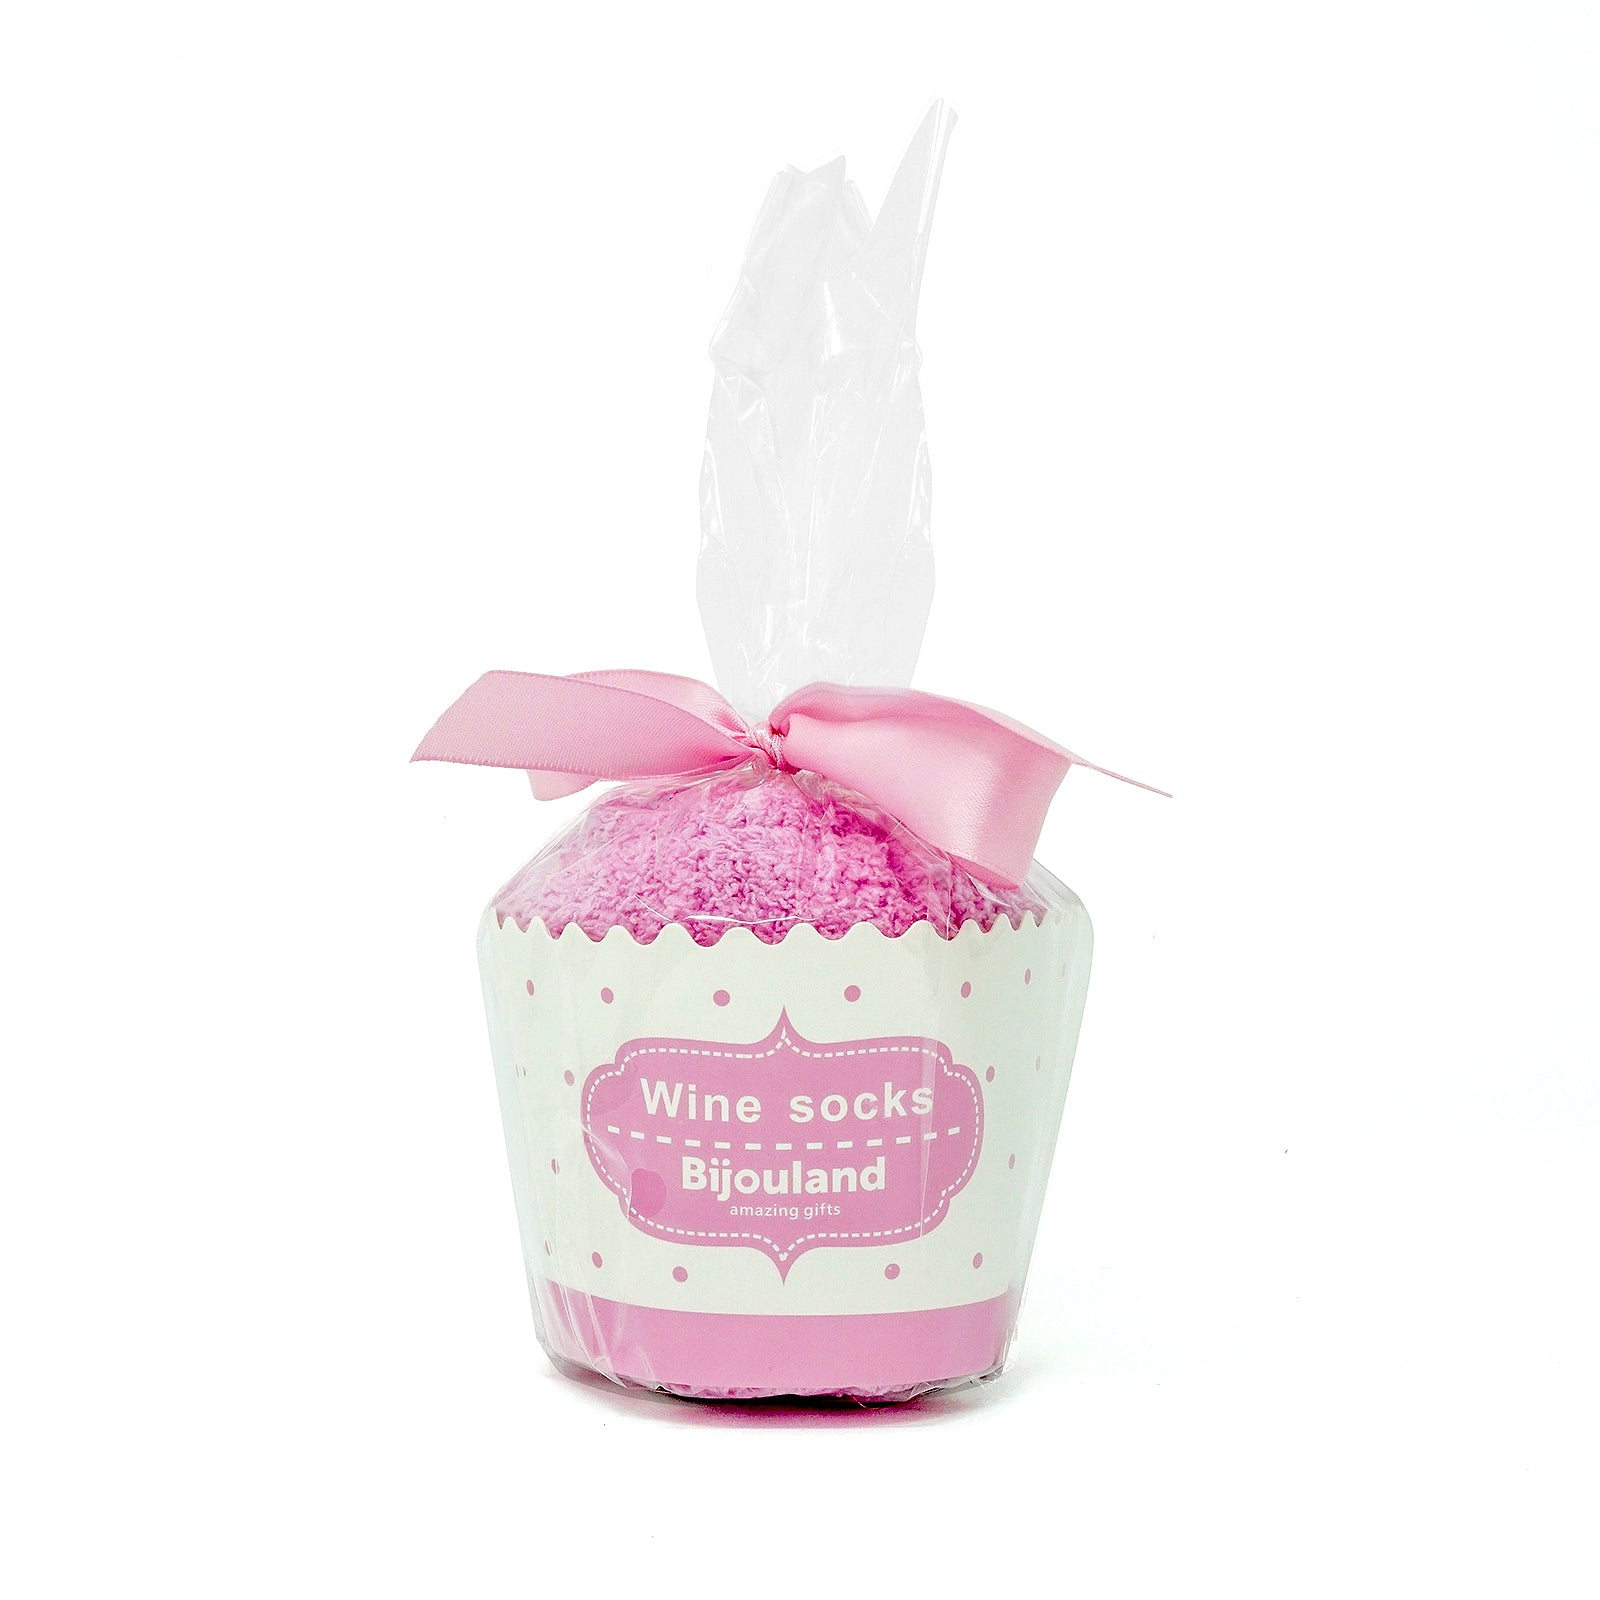 Bring Me Some Winе Socks - Gift for Mother's Day With Cute Cupcake Package